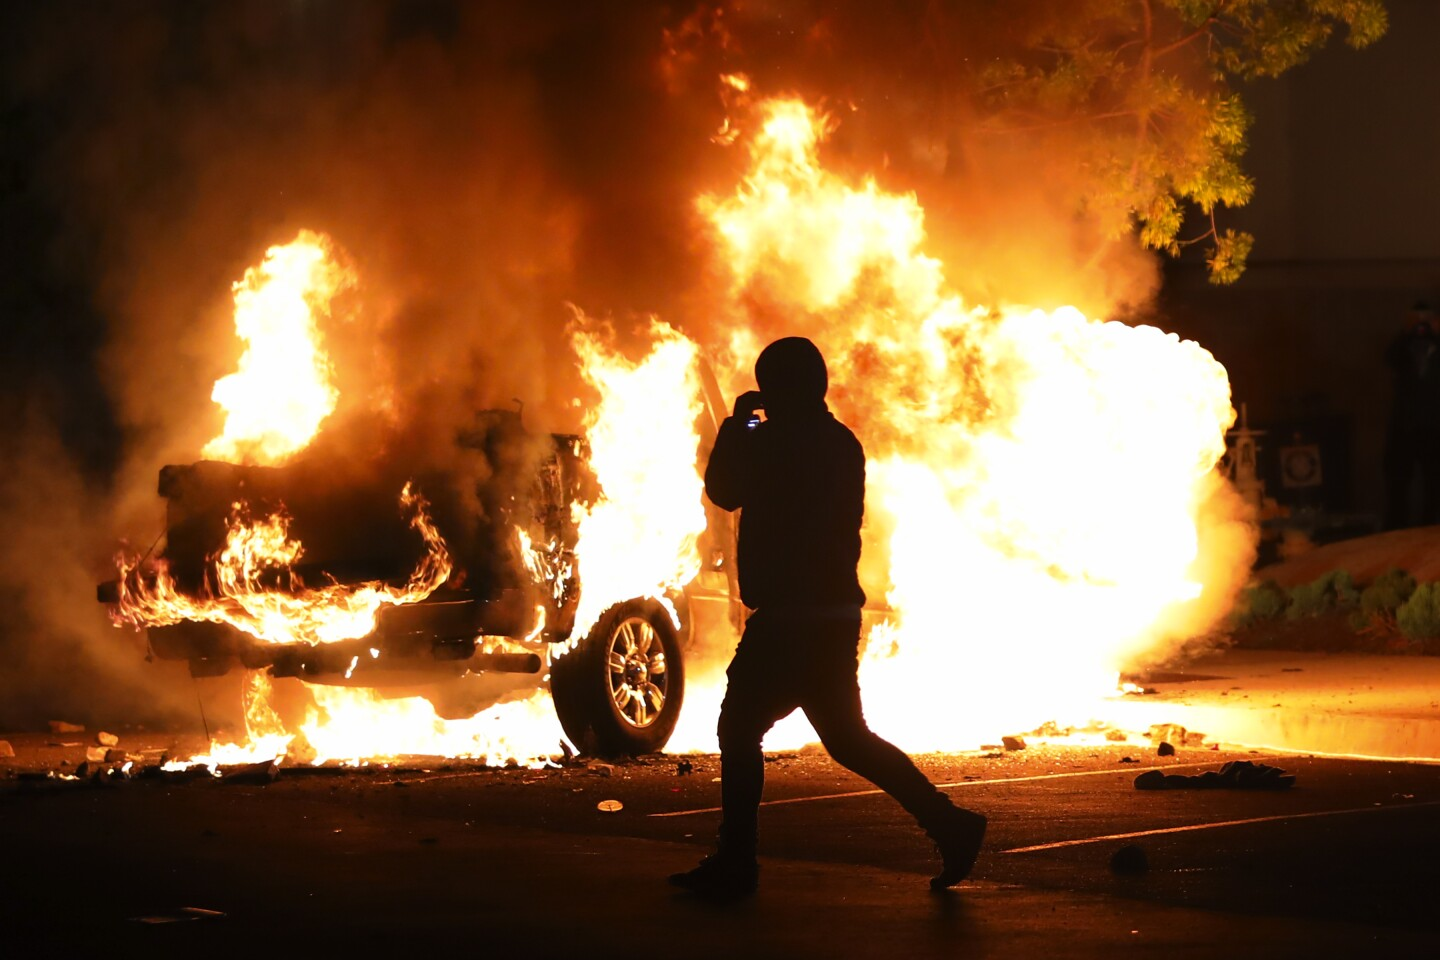 Protestors walk past a fully engulfed vehicle parked on Allison Avenue on fire Saturday night.